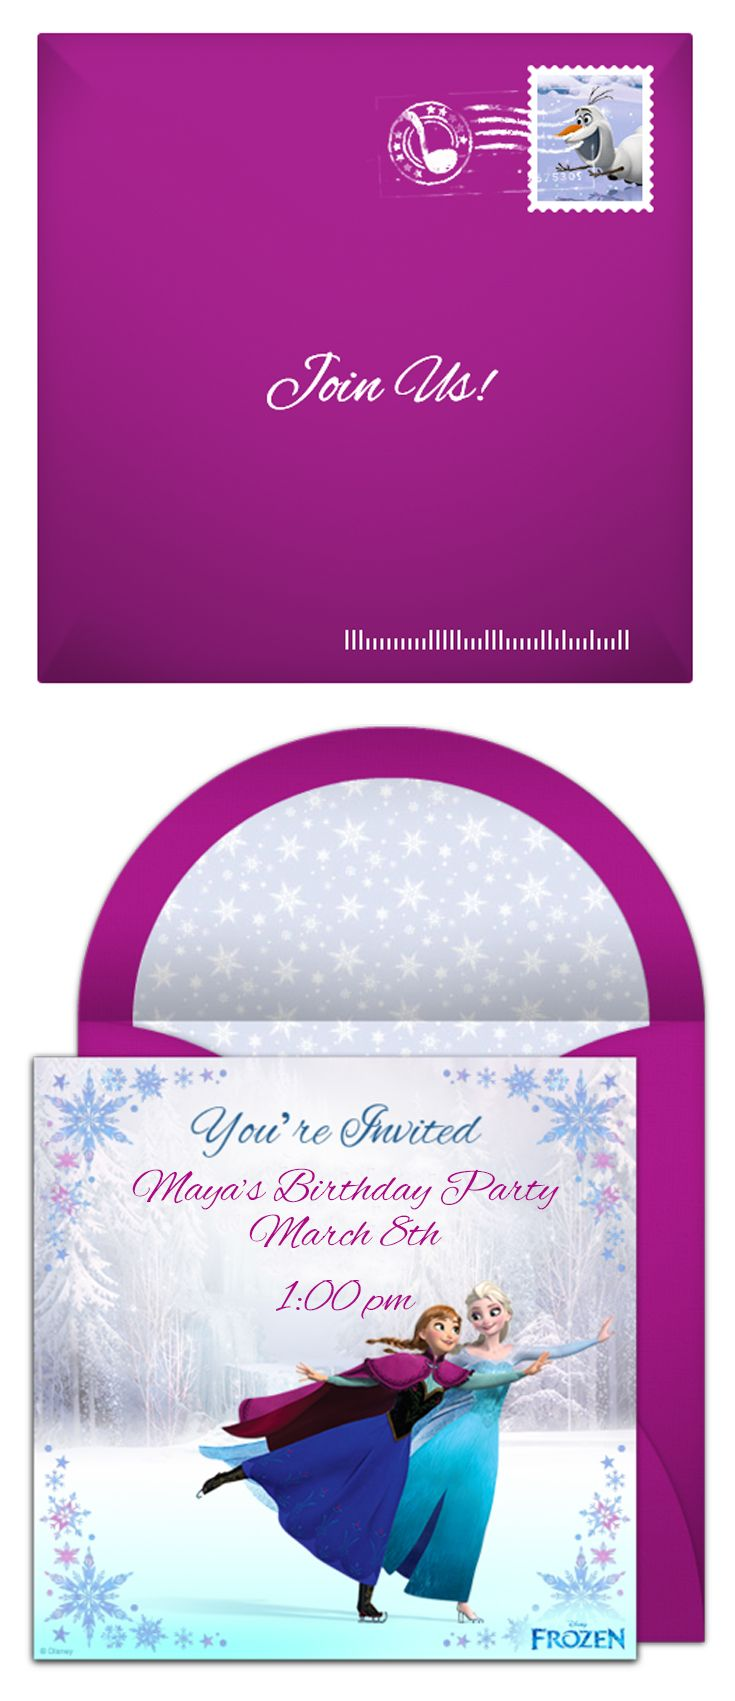 Paper invites are too formal, and emails are too casual. Get it just right…